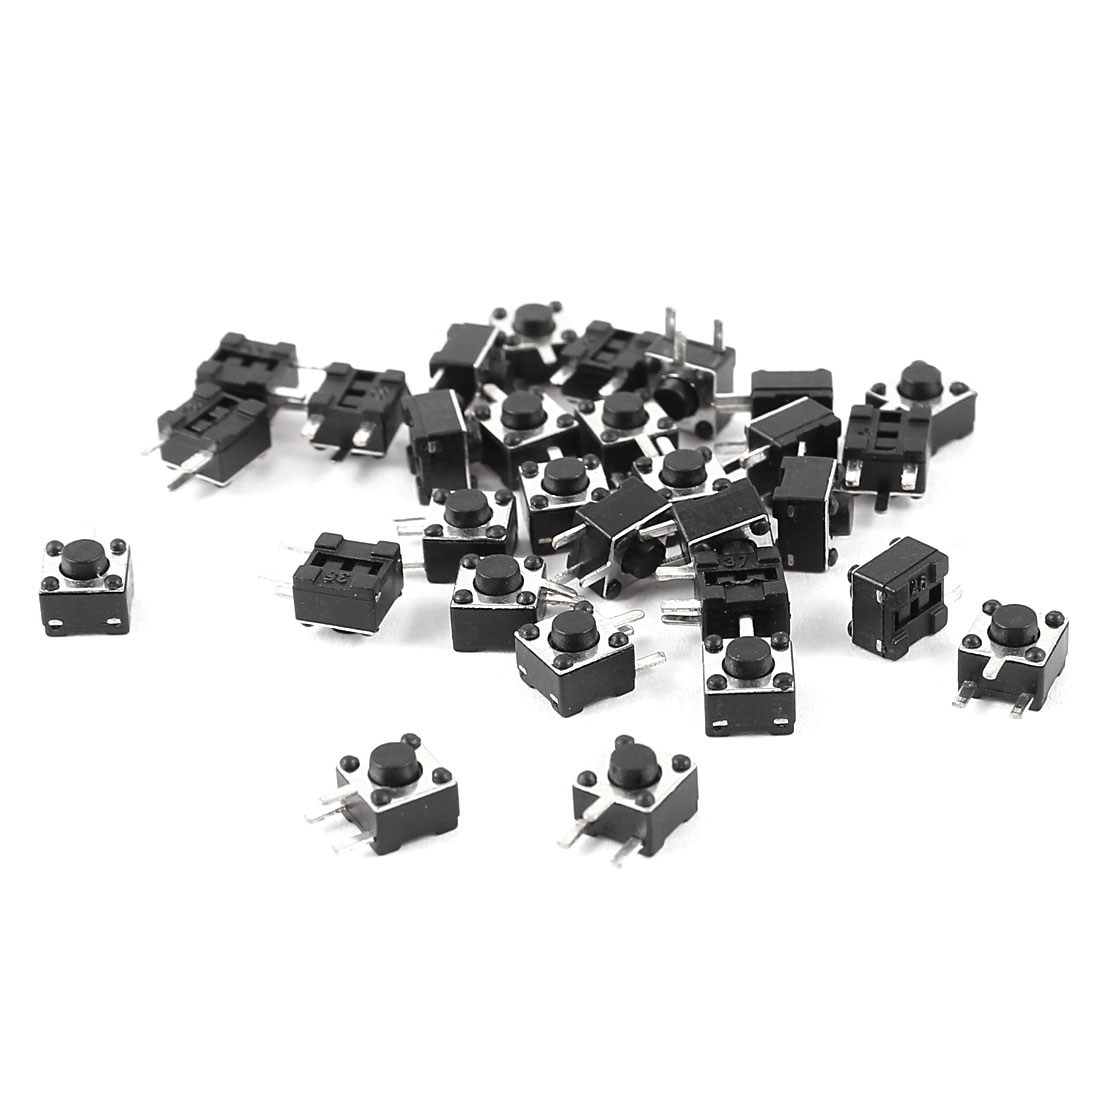 30pcs Momentary Panel PCB Mount Round Push Button SPST Tactile Tact Switch Black 4.5mmx4.5mmx3.8mm